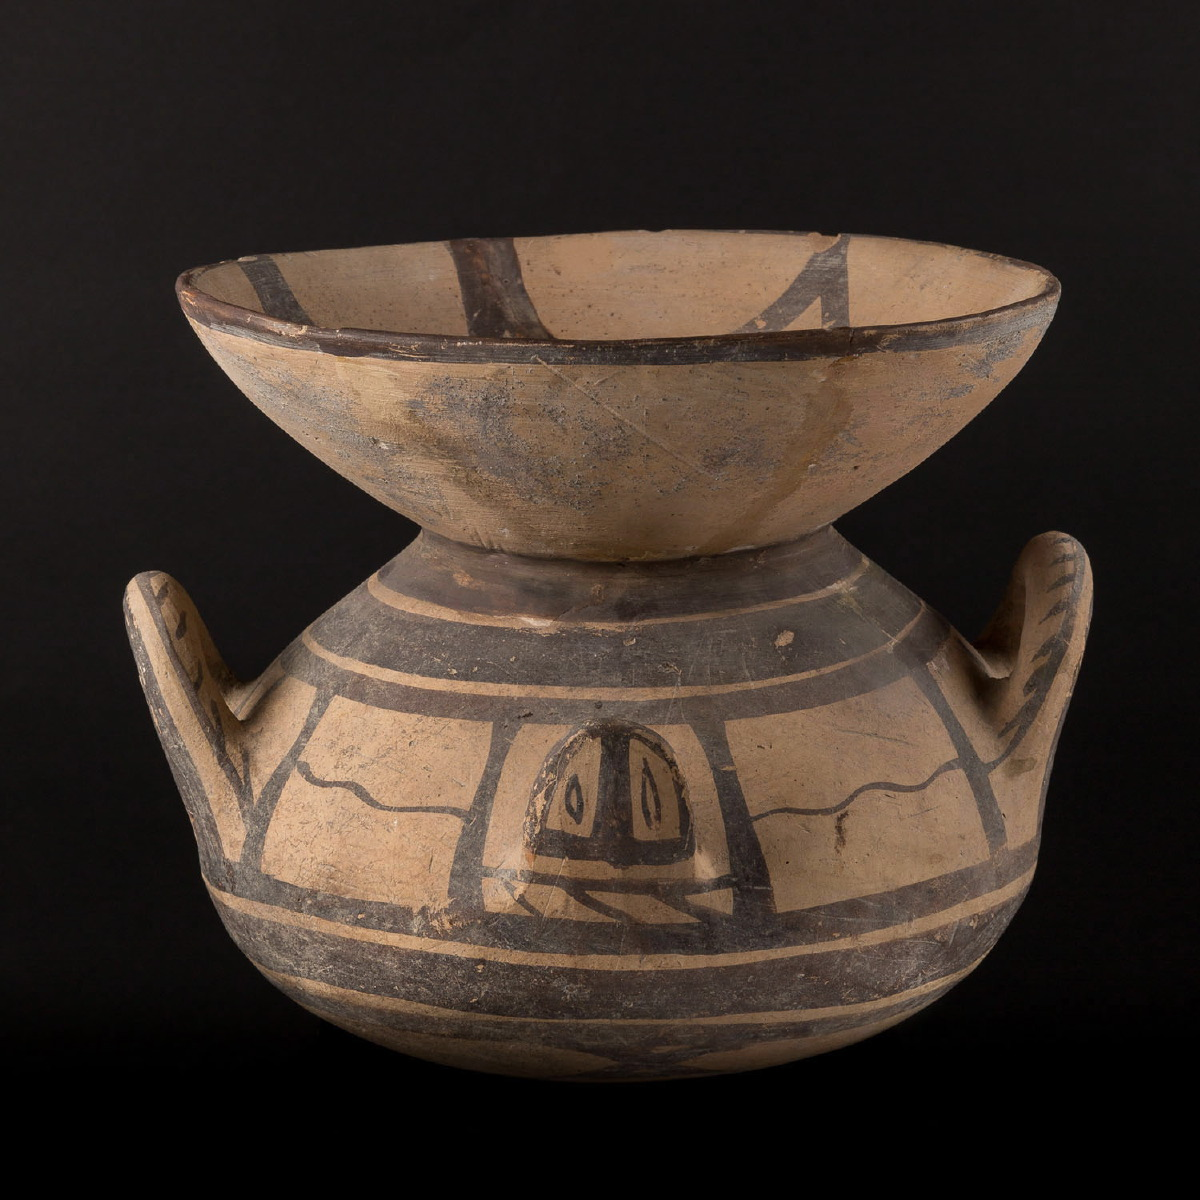 Photo of olla-vase-apulian-daunian-iapyge-terracotta-archeology-galerie-golconda